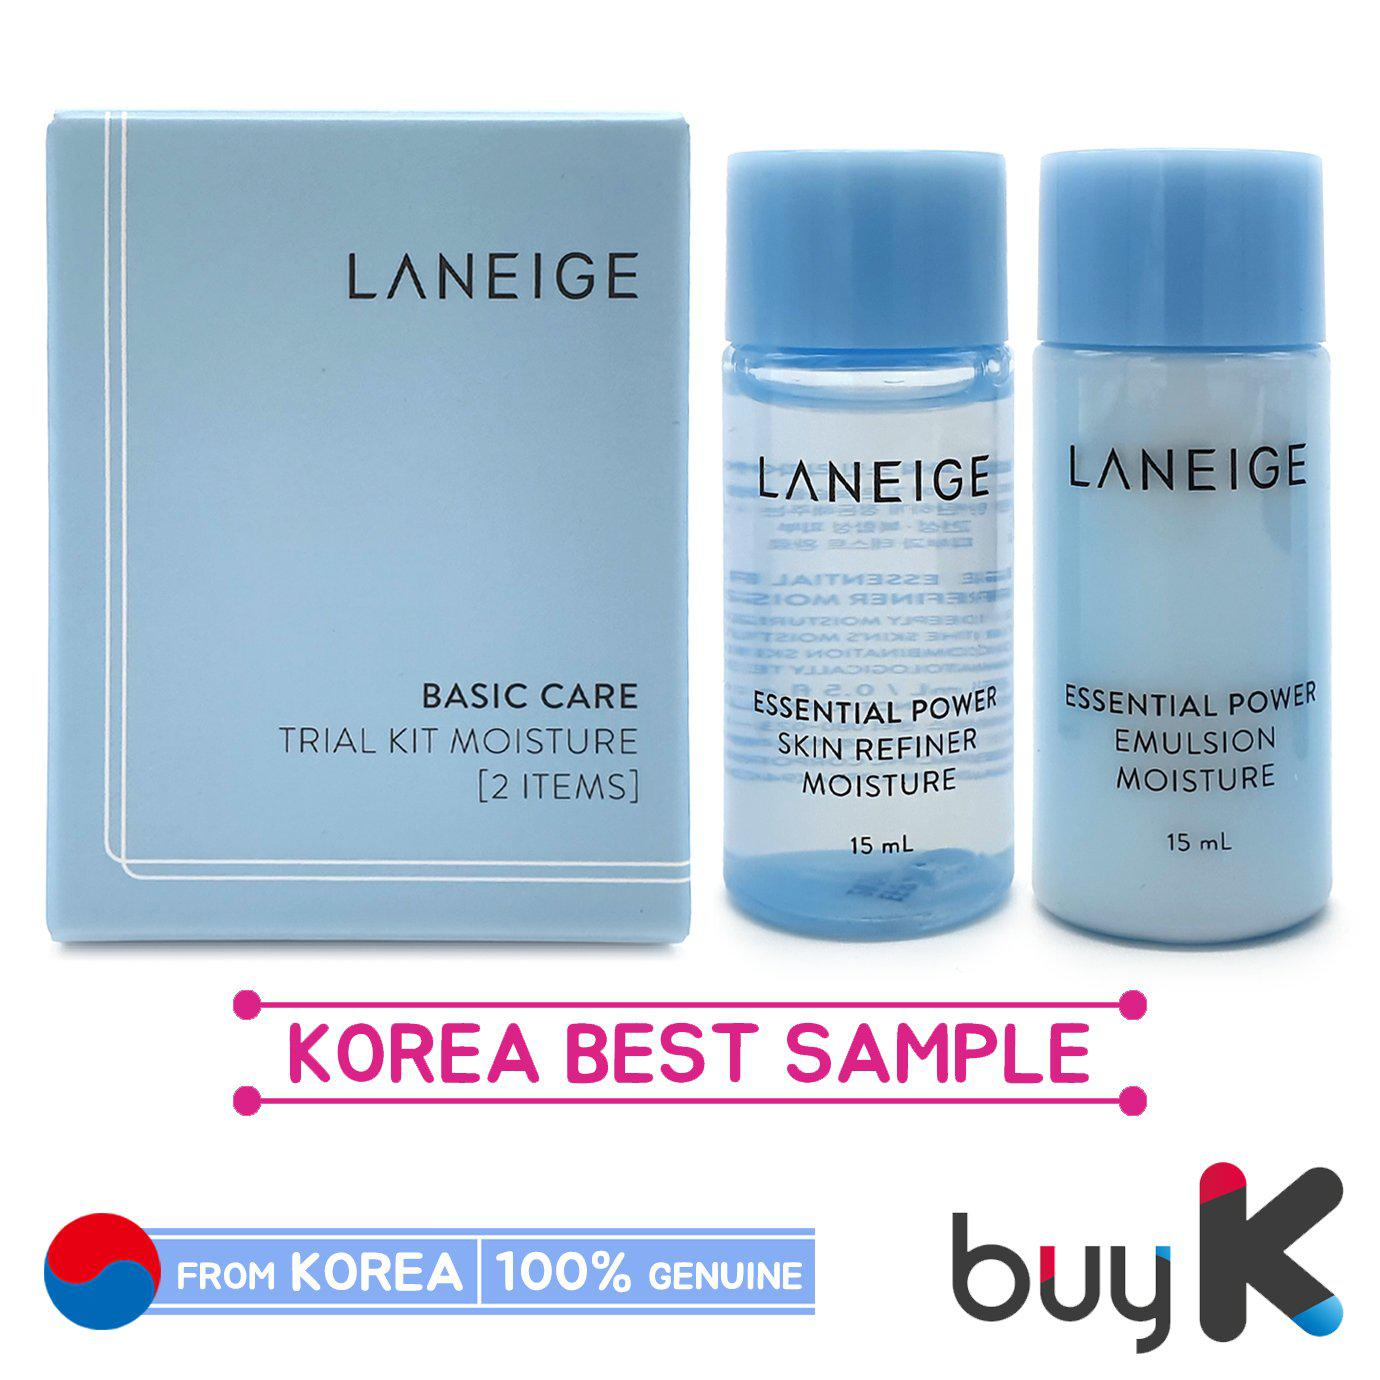 [LANEIGE] Basic Care Trial Kit Moisture (1 box / 2 items)